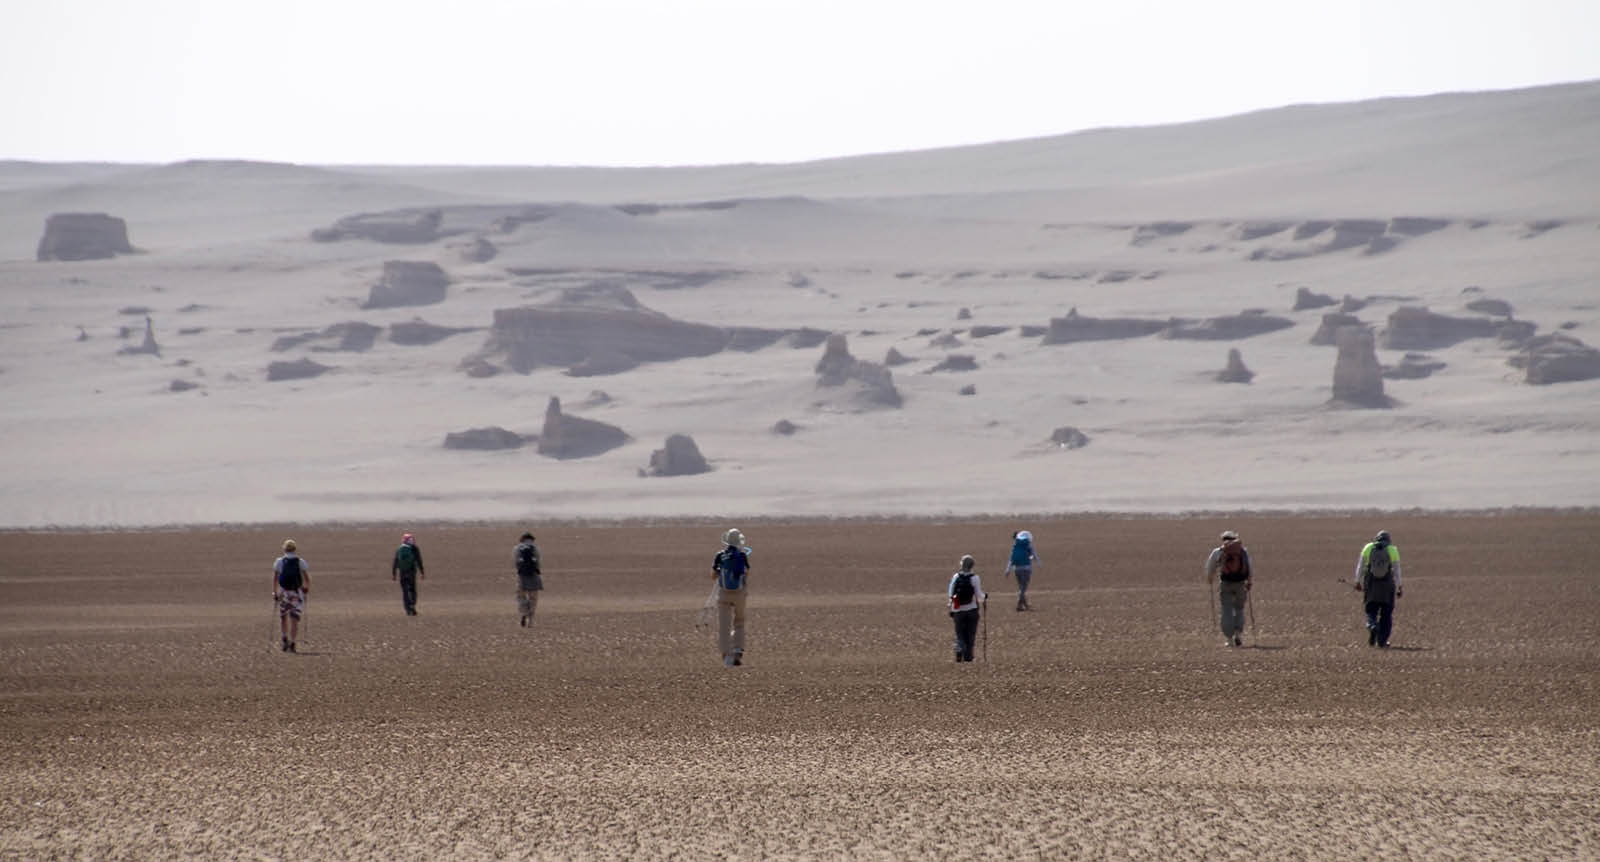 Secret Compass team cross the Lut desert in Iran.